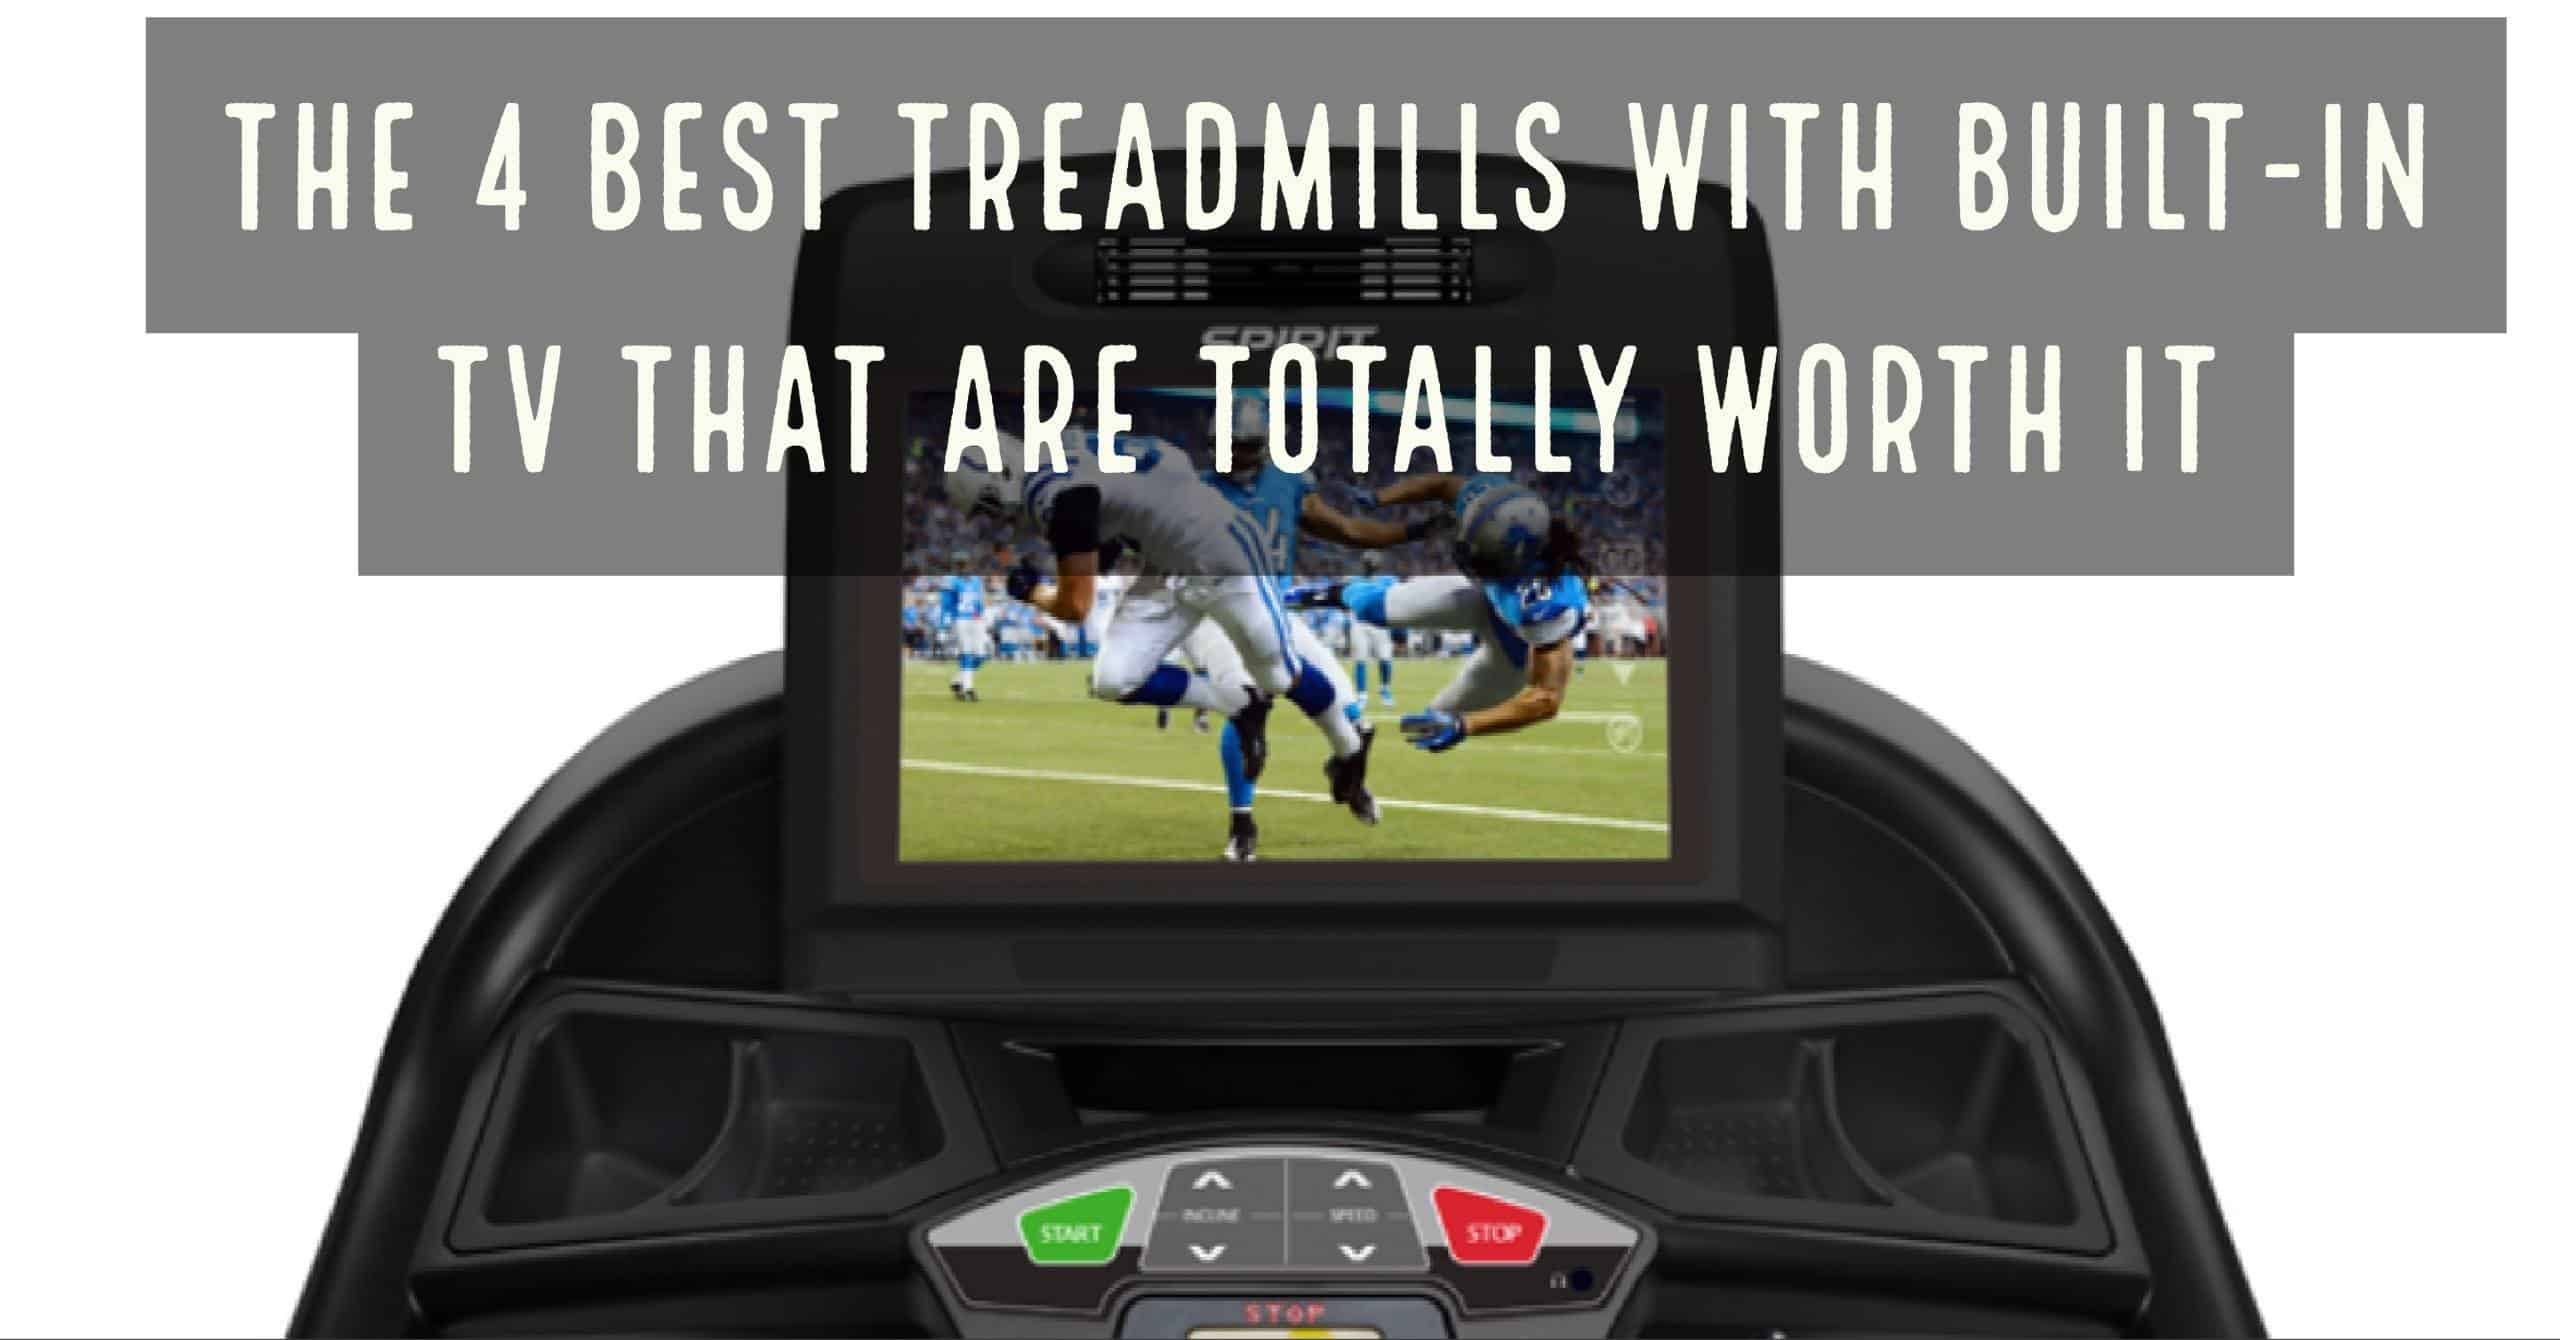 Exercising on a treadmill has its benefits. It is an excellent tool to use during inclement weather and outside workouts are not an option. Treadmill work is monotonous and can turn boring, which hampers with motivation. That is why many have built-in TVs or LCD screens - here are the 4 best with built-in TVs.